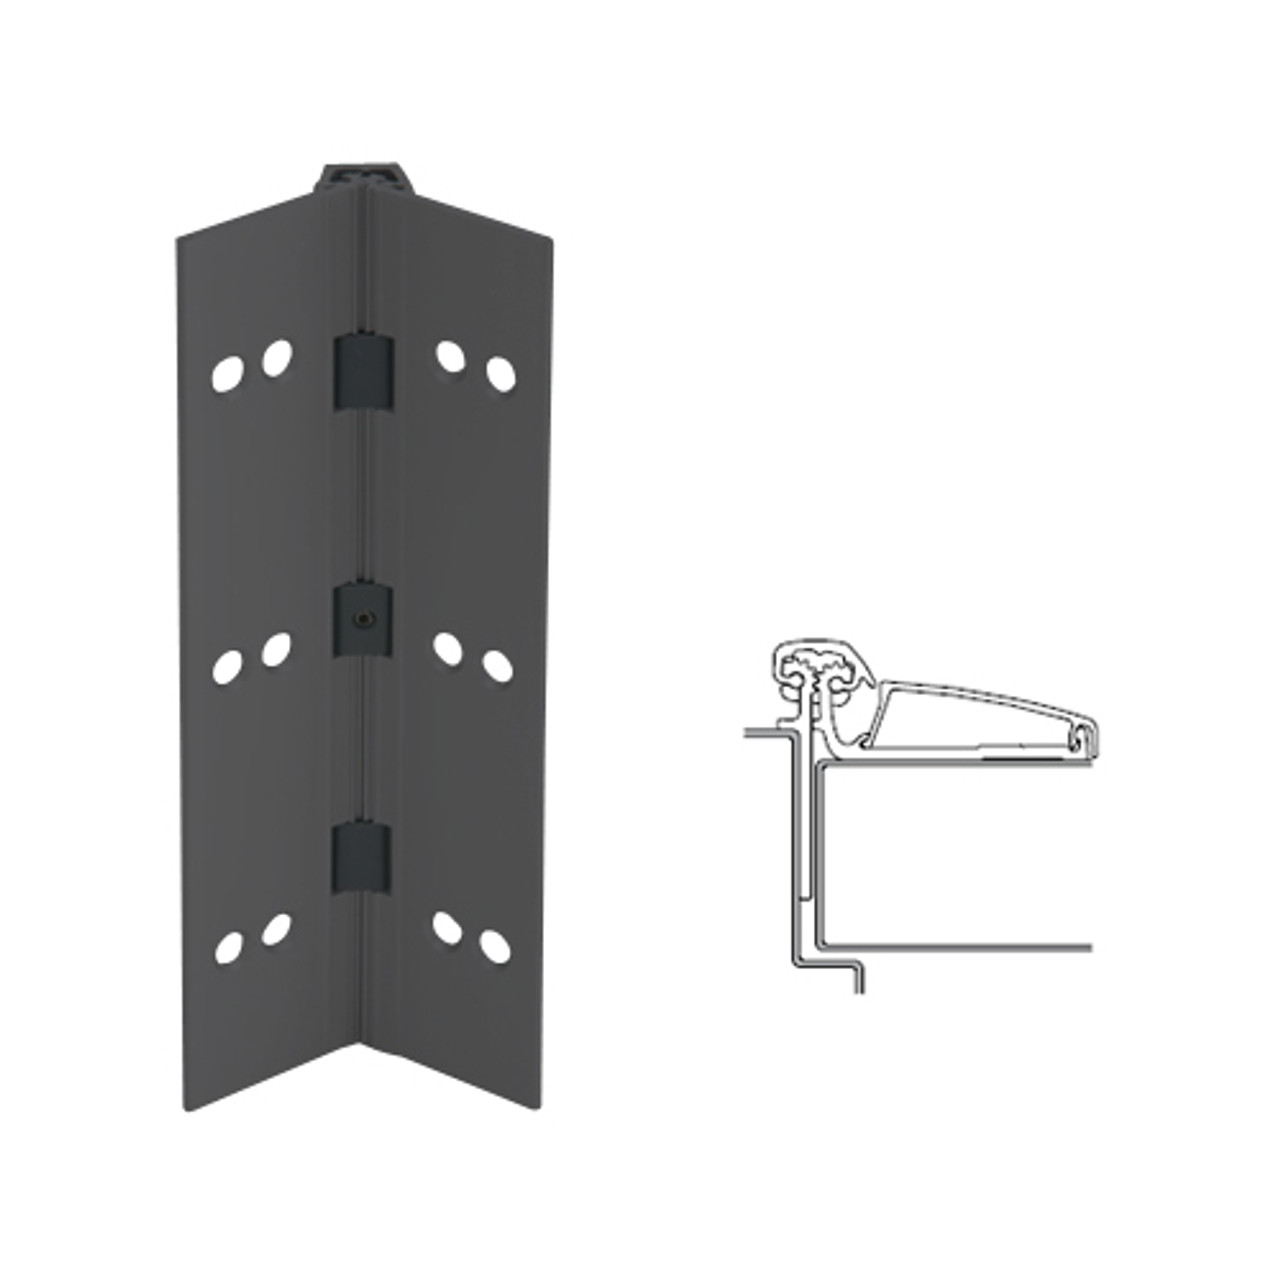 045XY-315AN-83-TEKWD IVES Adjustable Half Surface Continuous Geared Hinges with Wood Screws in Anodized Black